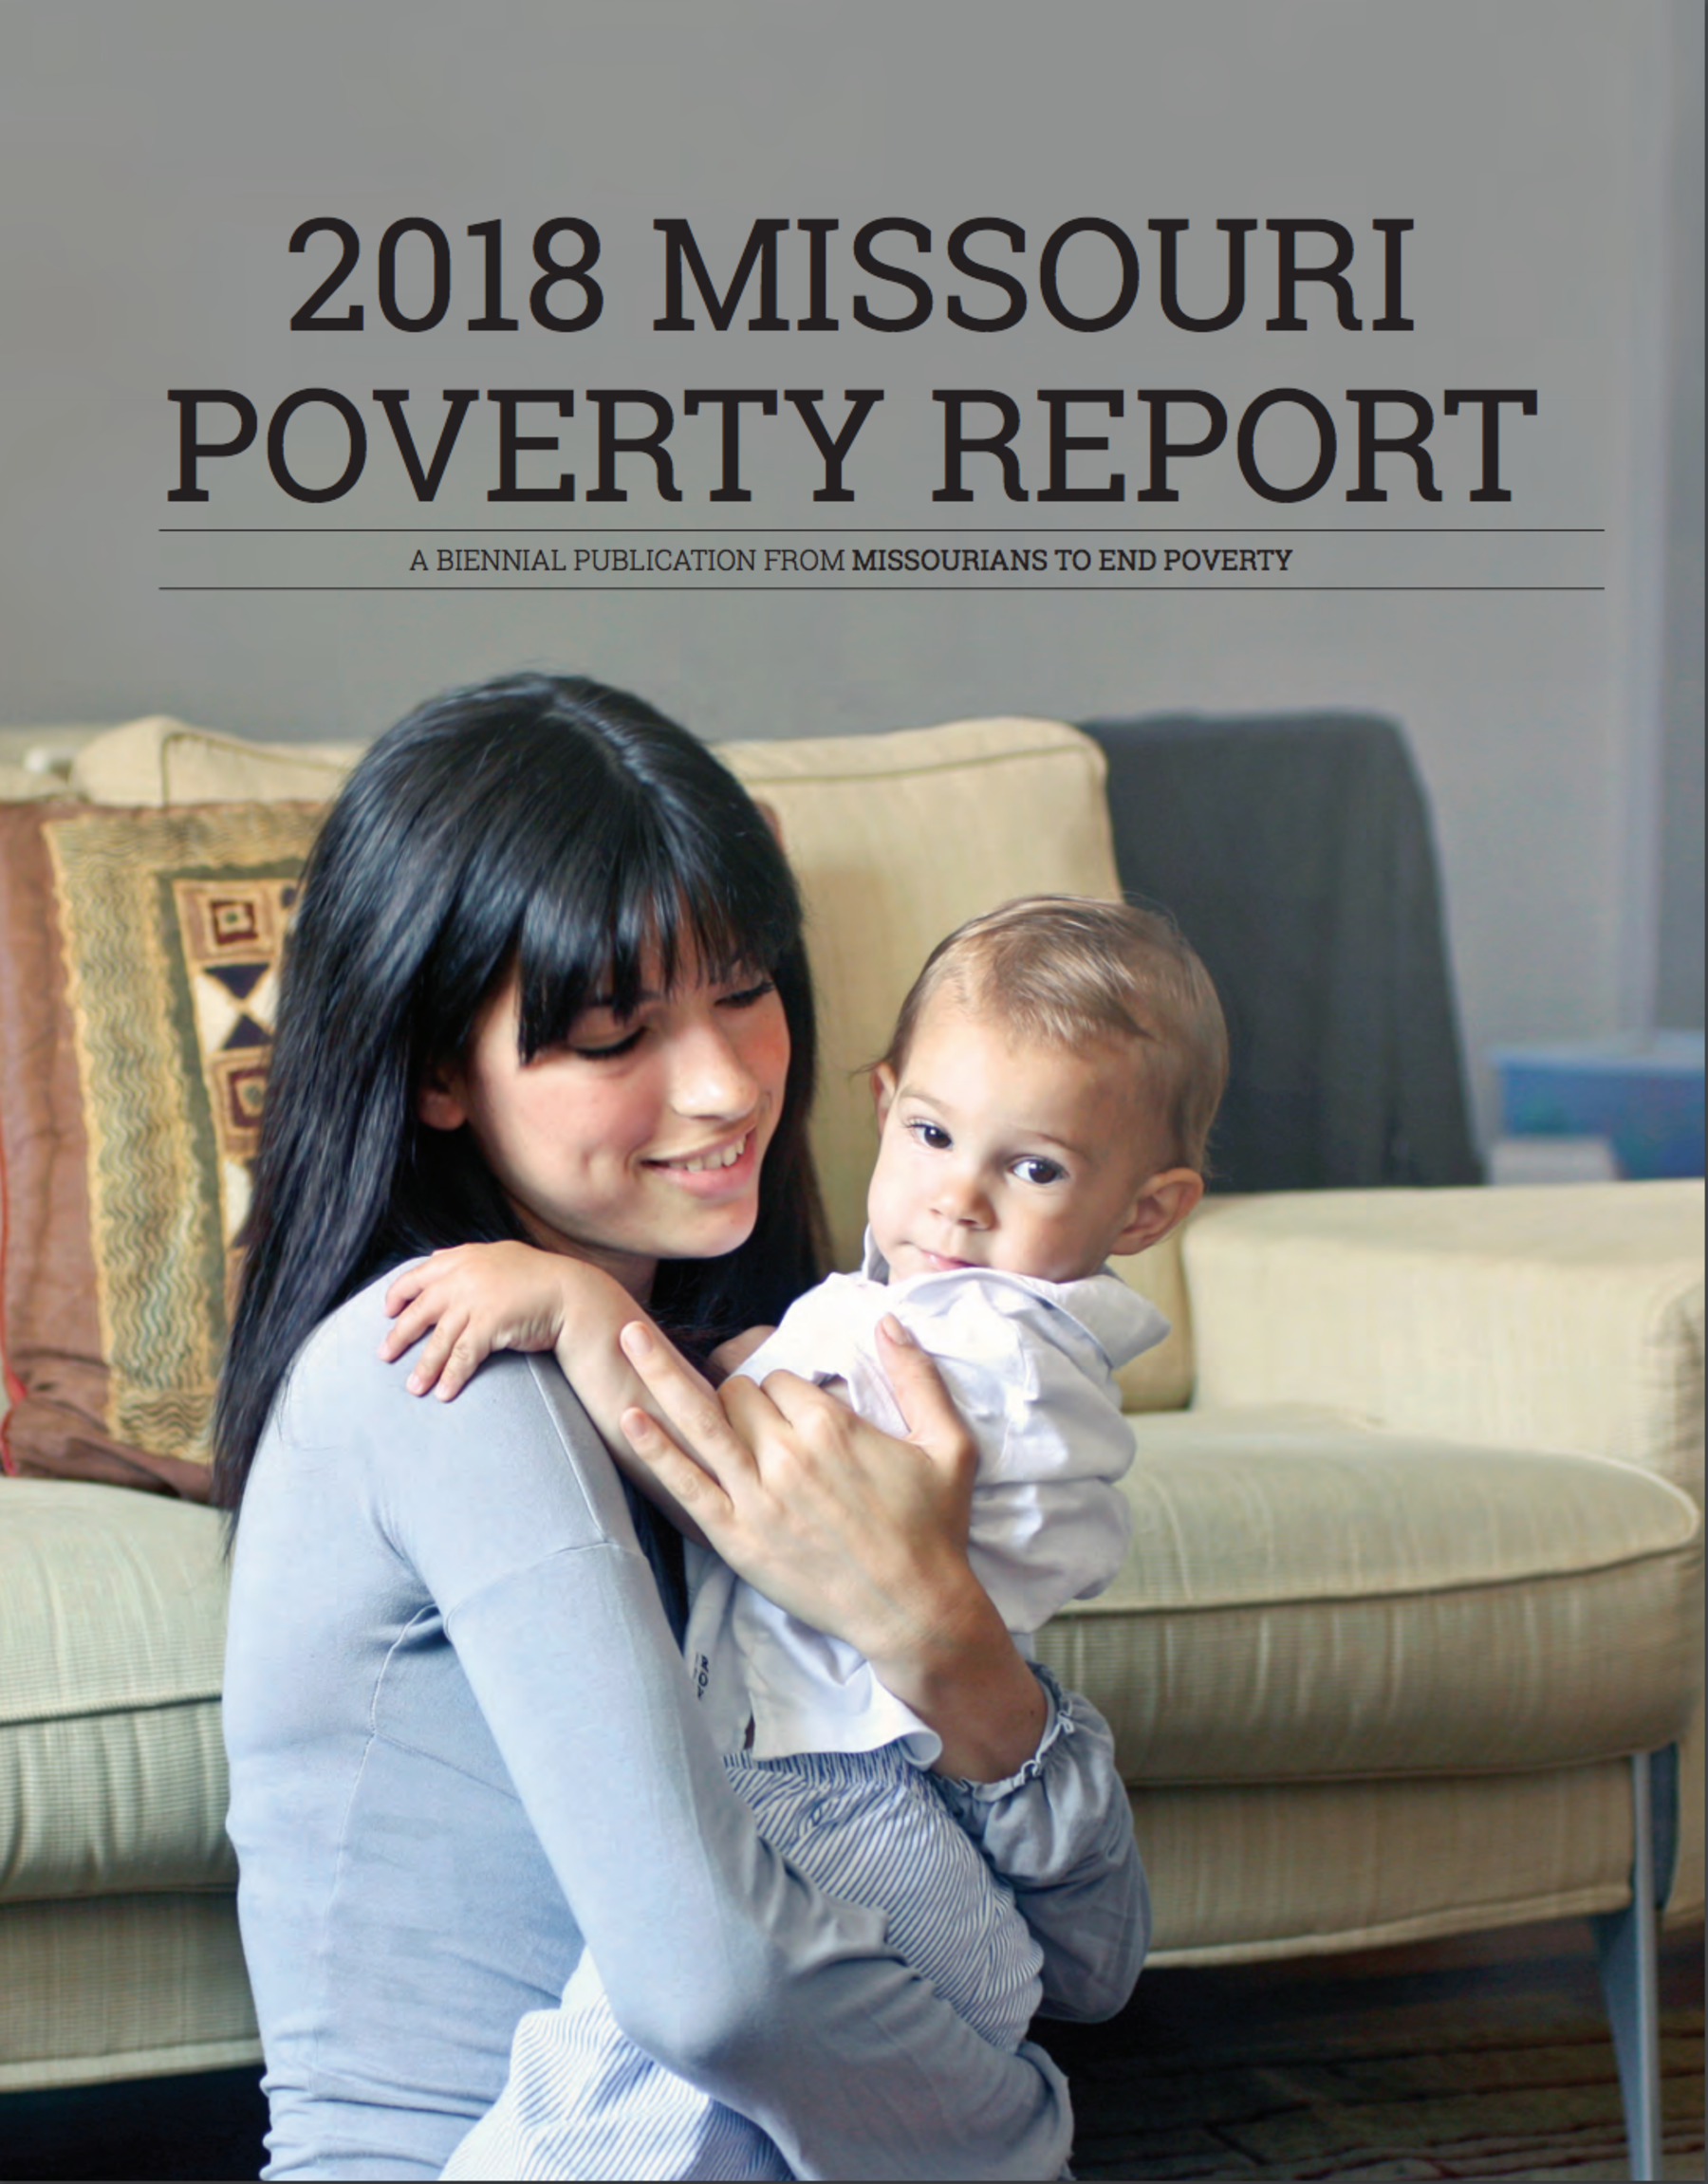 2018 Missouri Poverty Report